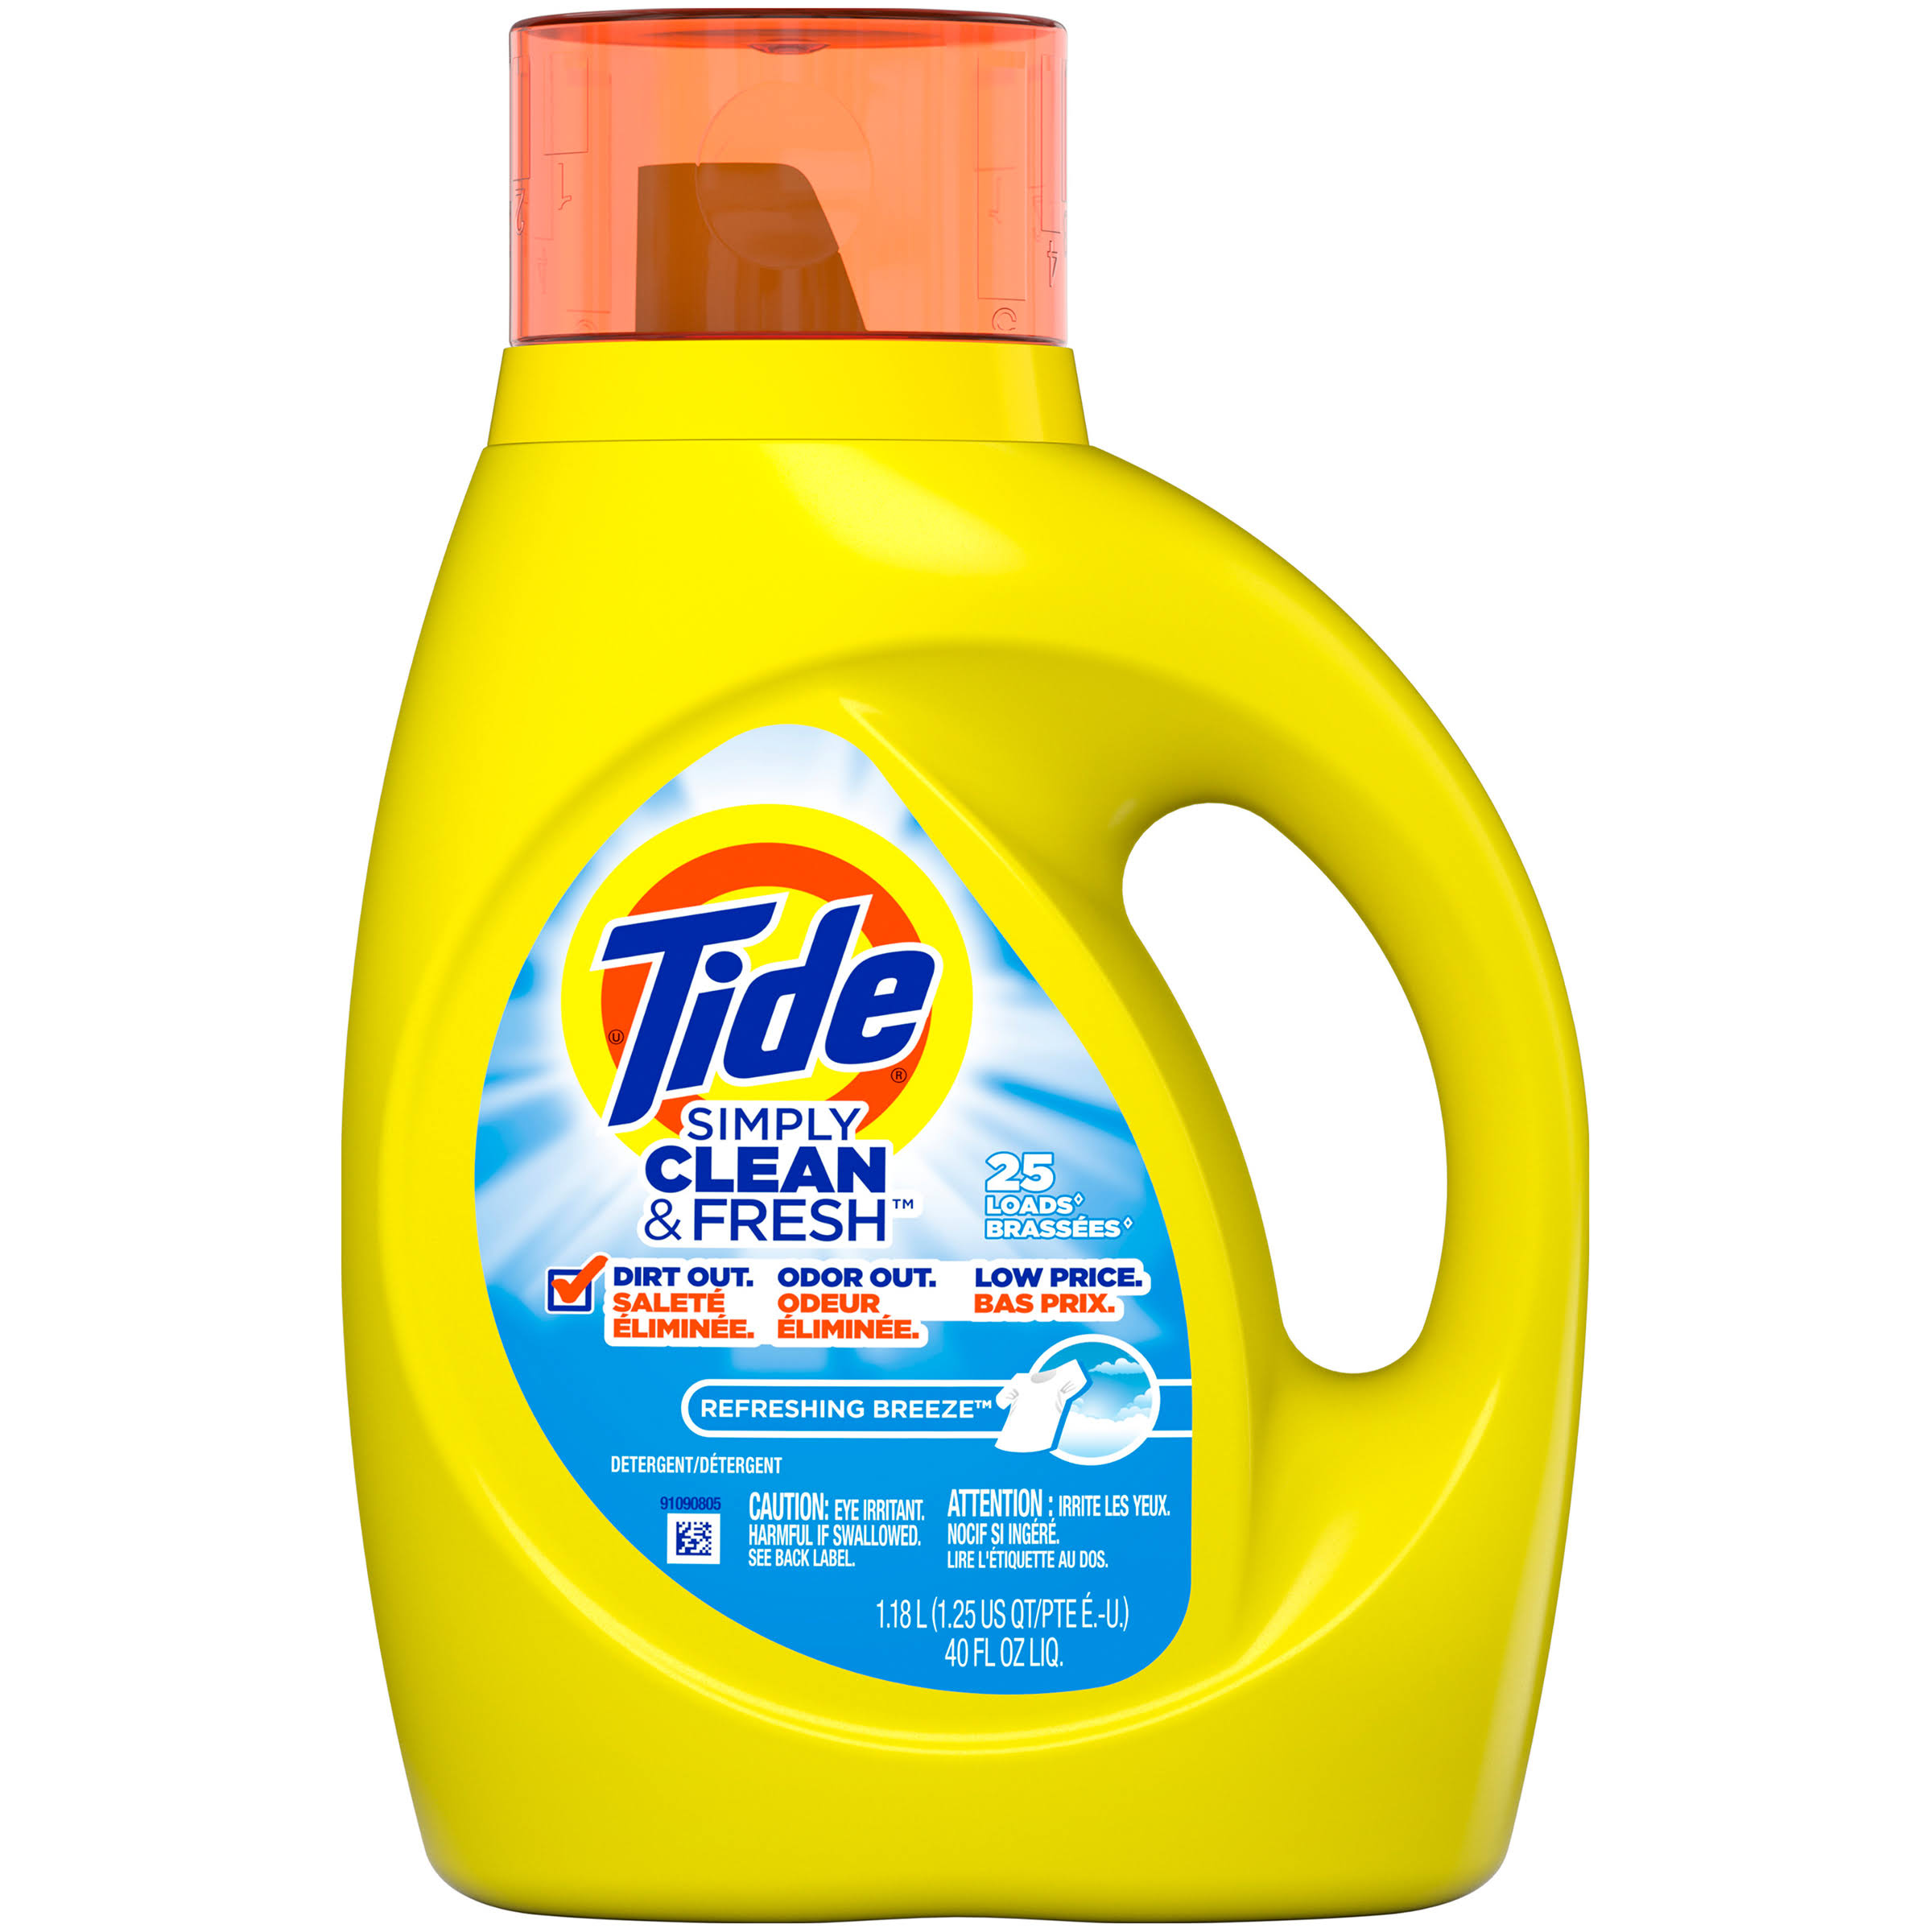 Tide Simply Clean & Fresh Detergent - Refreshing Breeze, 25 loads, 40oz